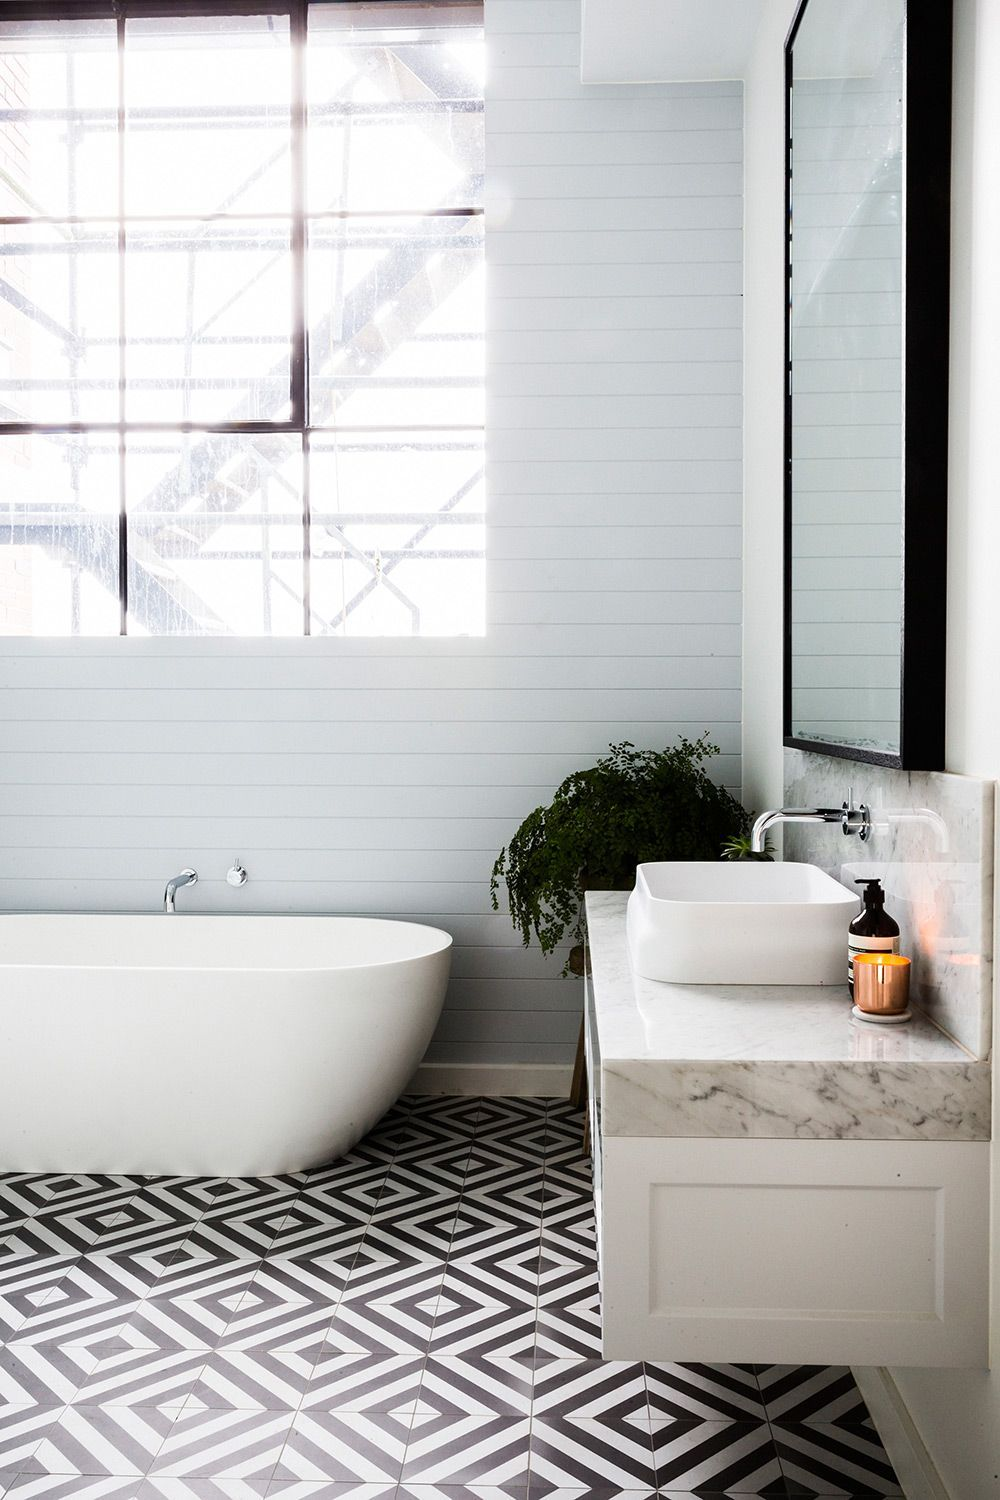 Amazing graphic floor tiles in this bathroom, with a beautiful ...